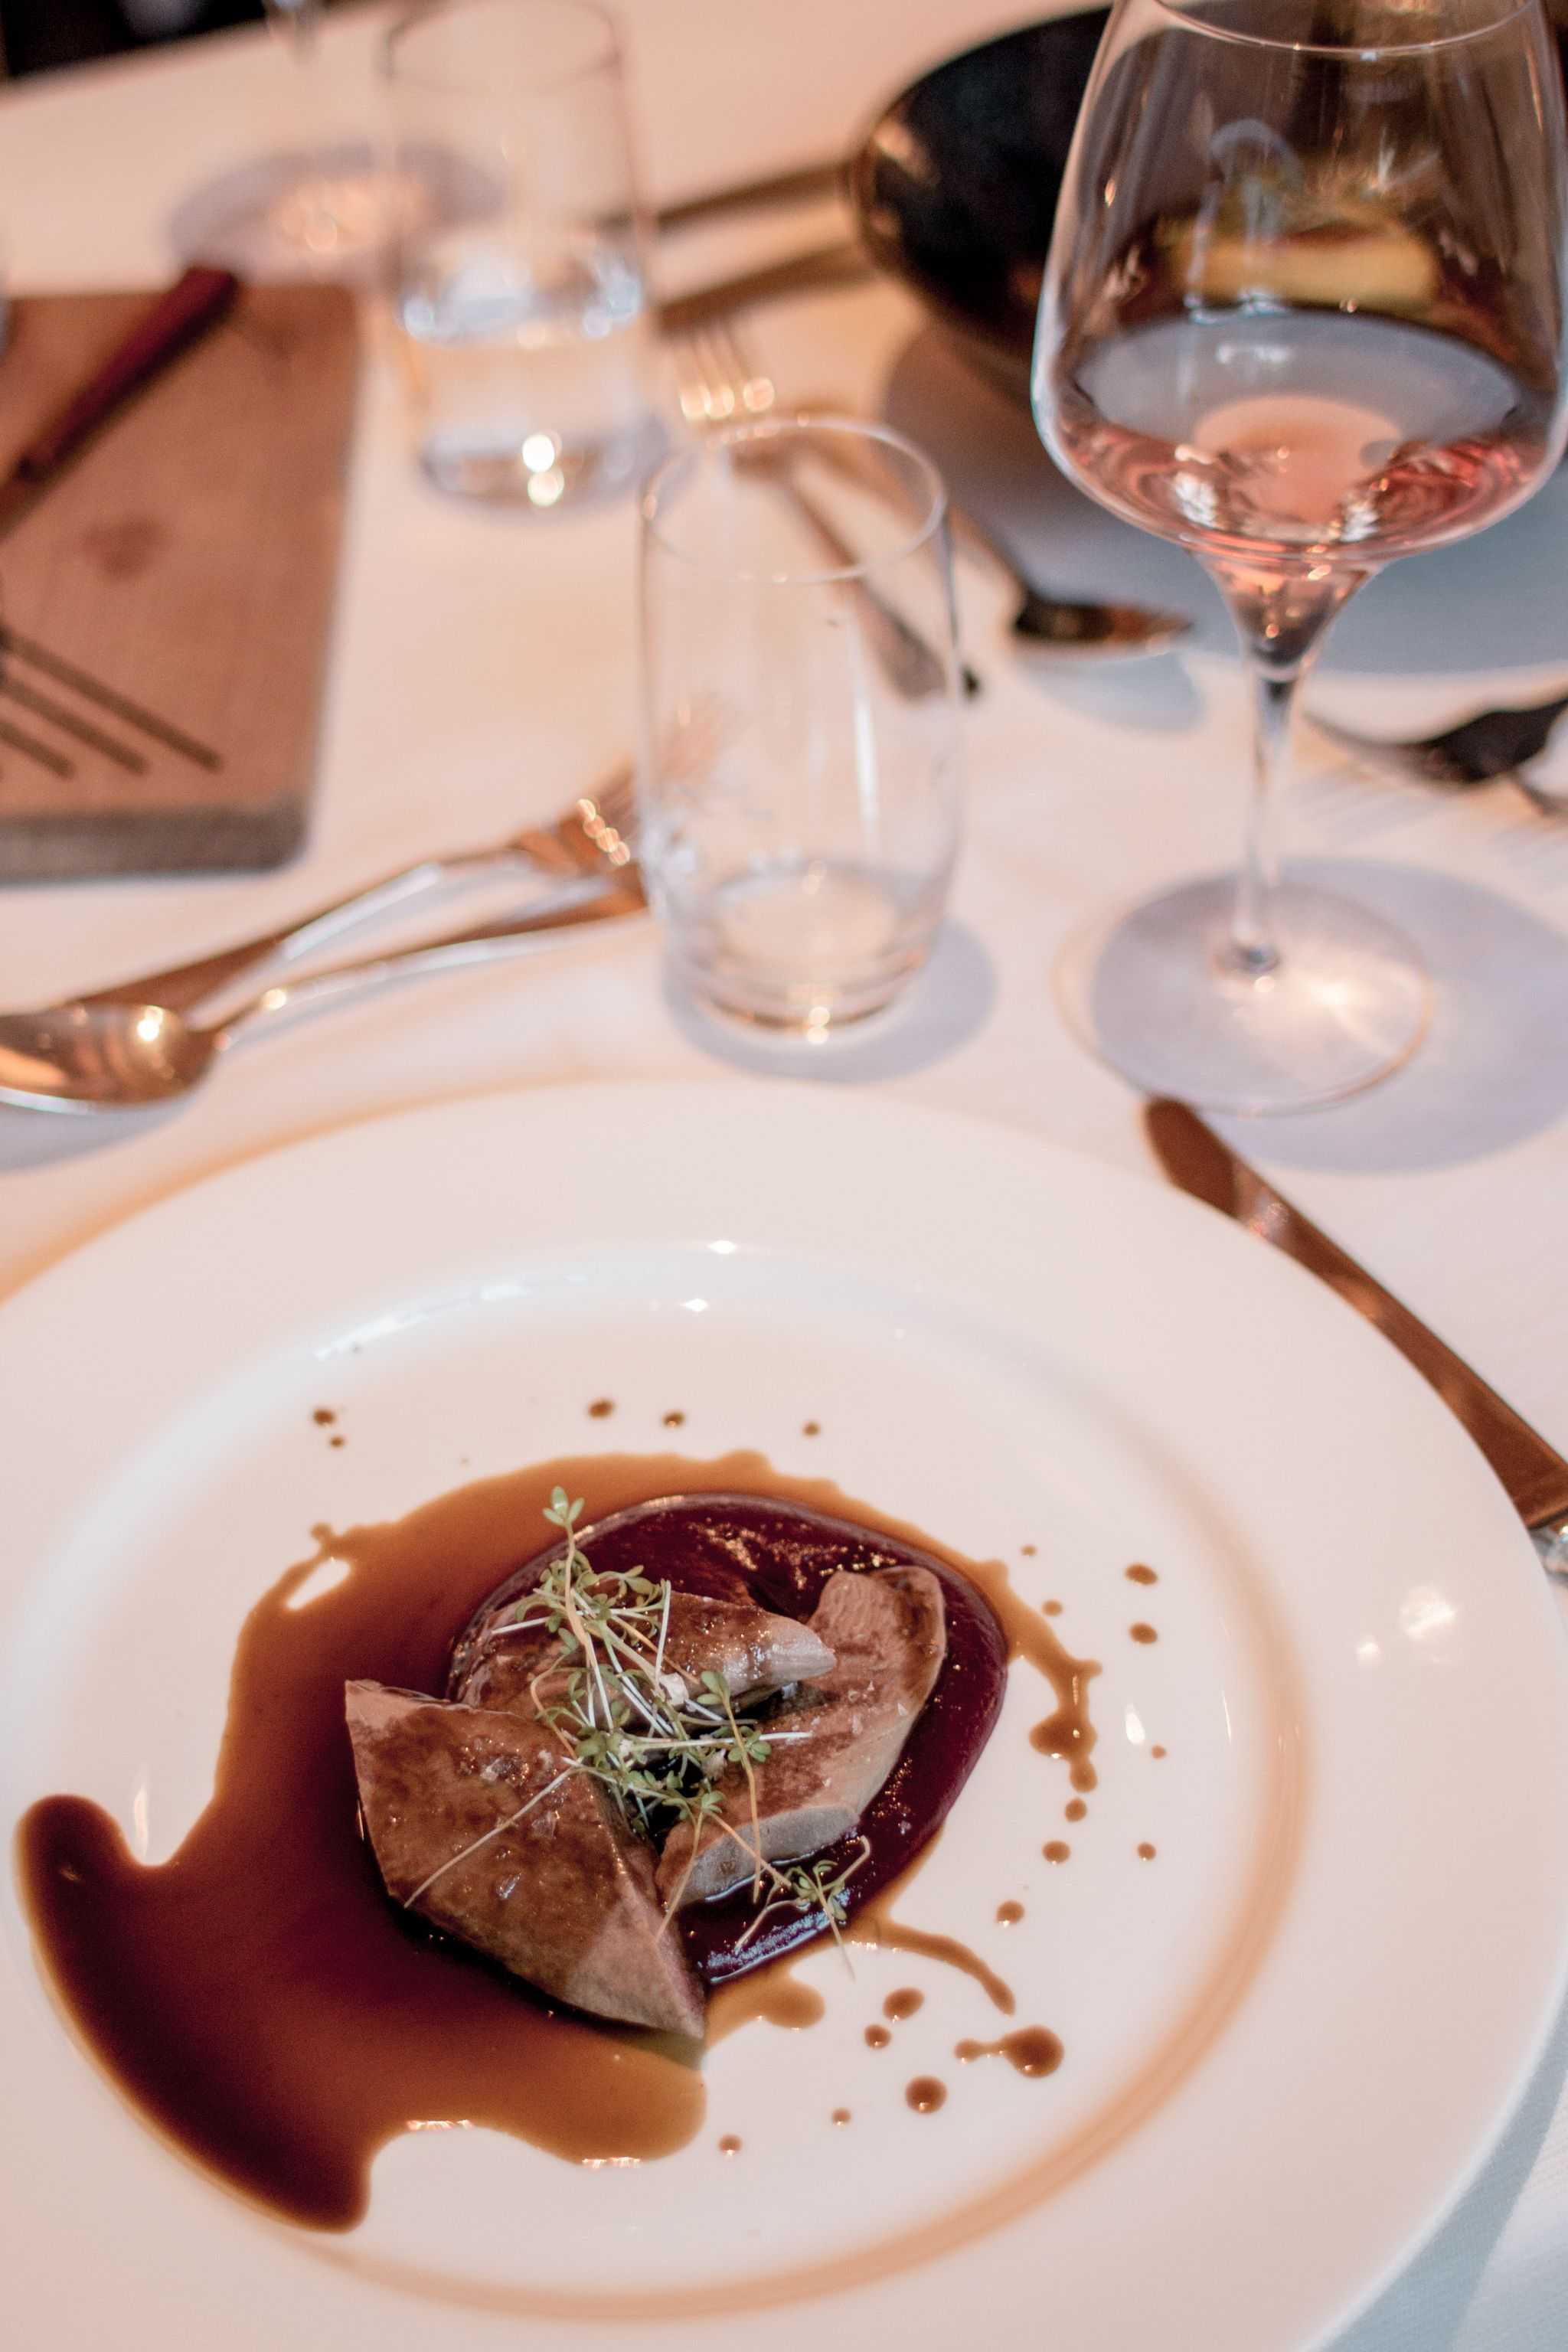 Adler Dolomites Hotel Ortisei Italy Hotel Review Evening Meal Veal